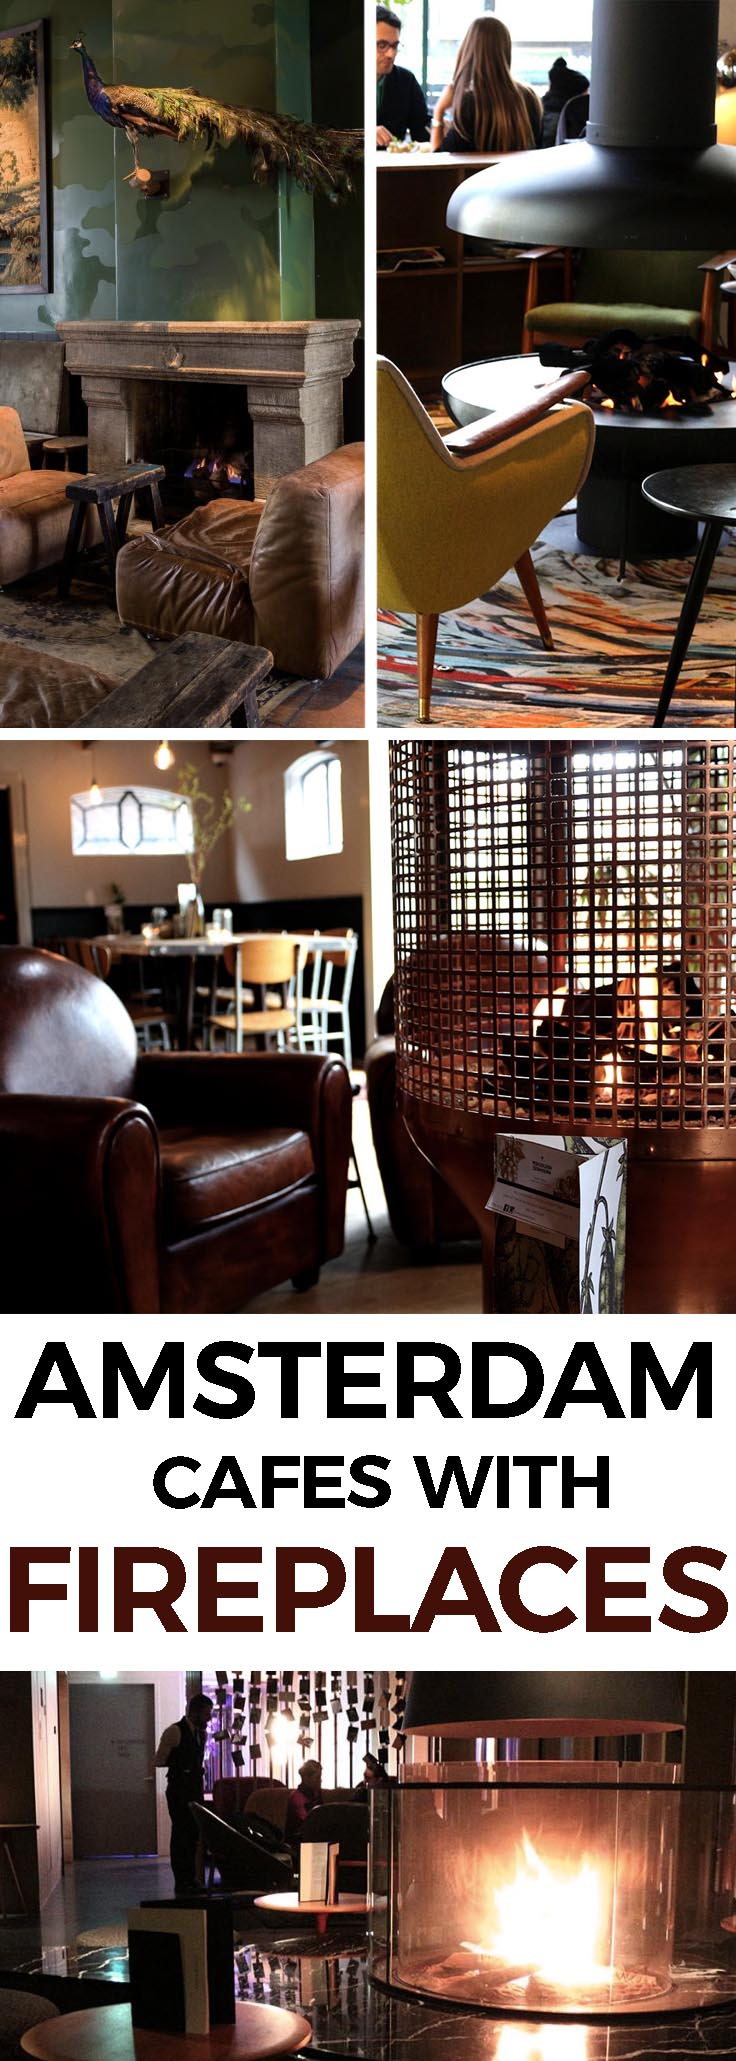 Here's a list of our favorite Amsterdam cafes and restaurants with fireplaces or firepits where you can relax with a drink, snuggle together and stare into the flames. - awesomeamsterdam.com